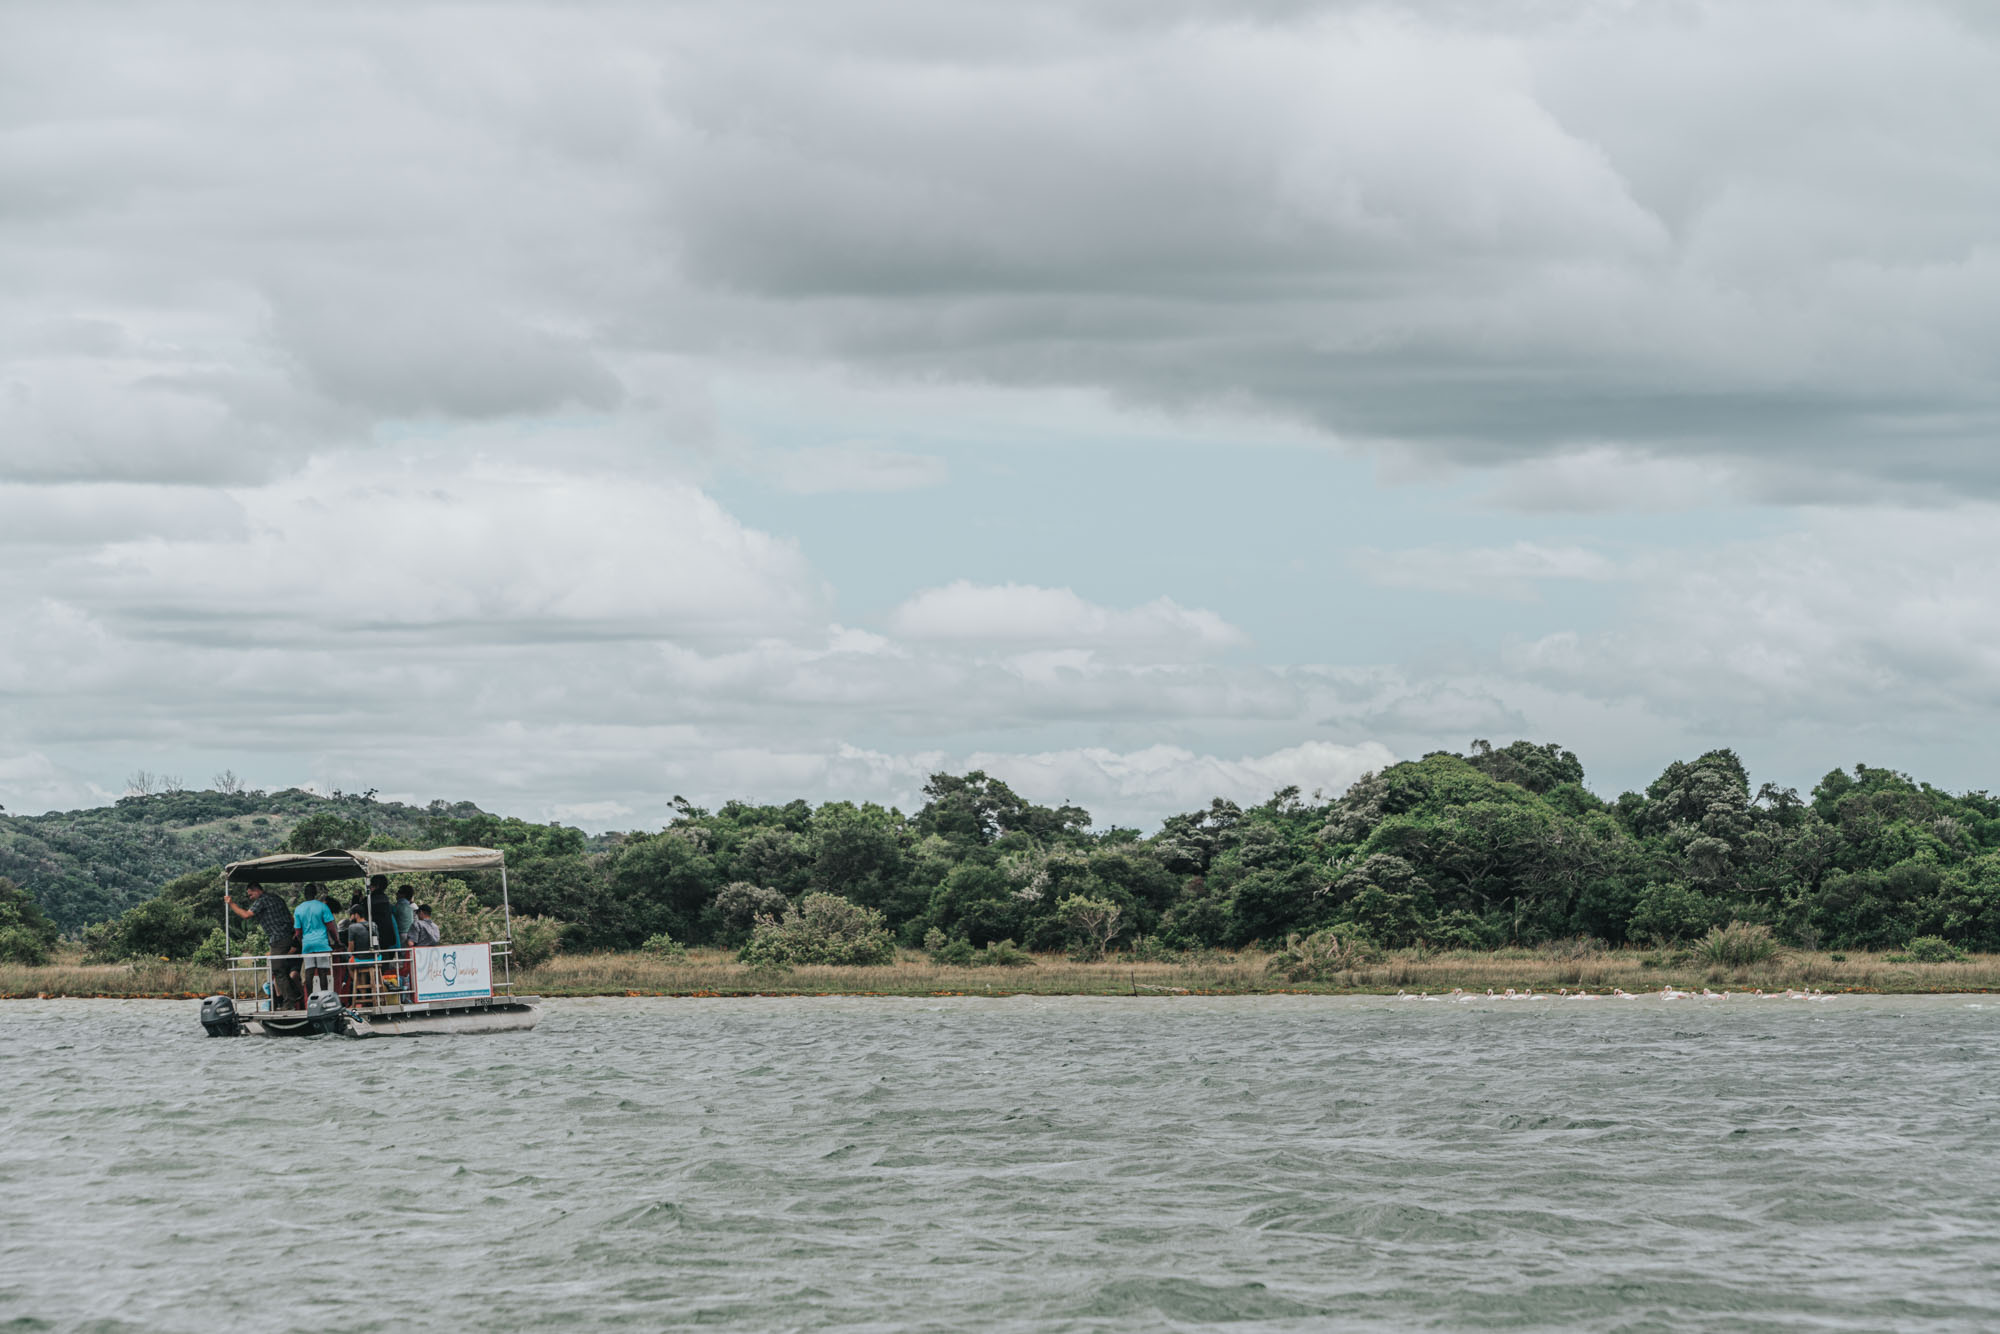 Boat tour in Kosi Bay,